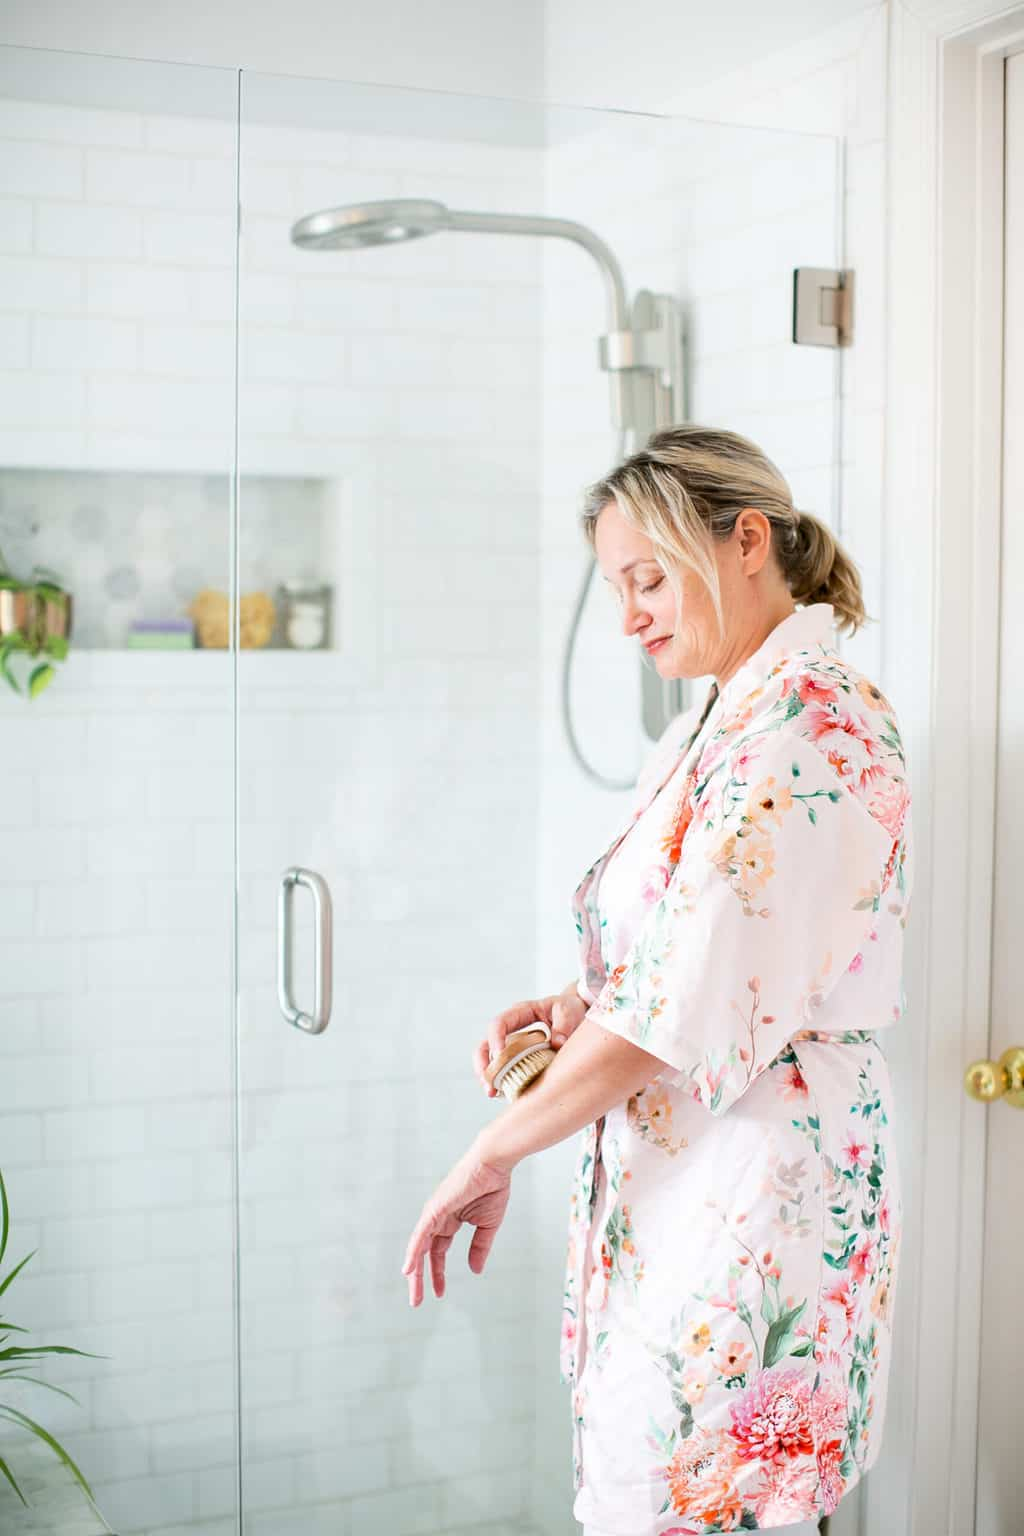 A shower feels more like self-care when you slow down and enjoy the process